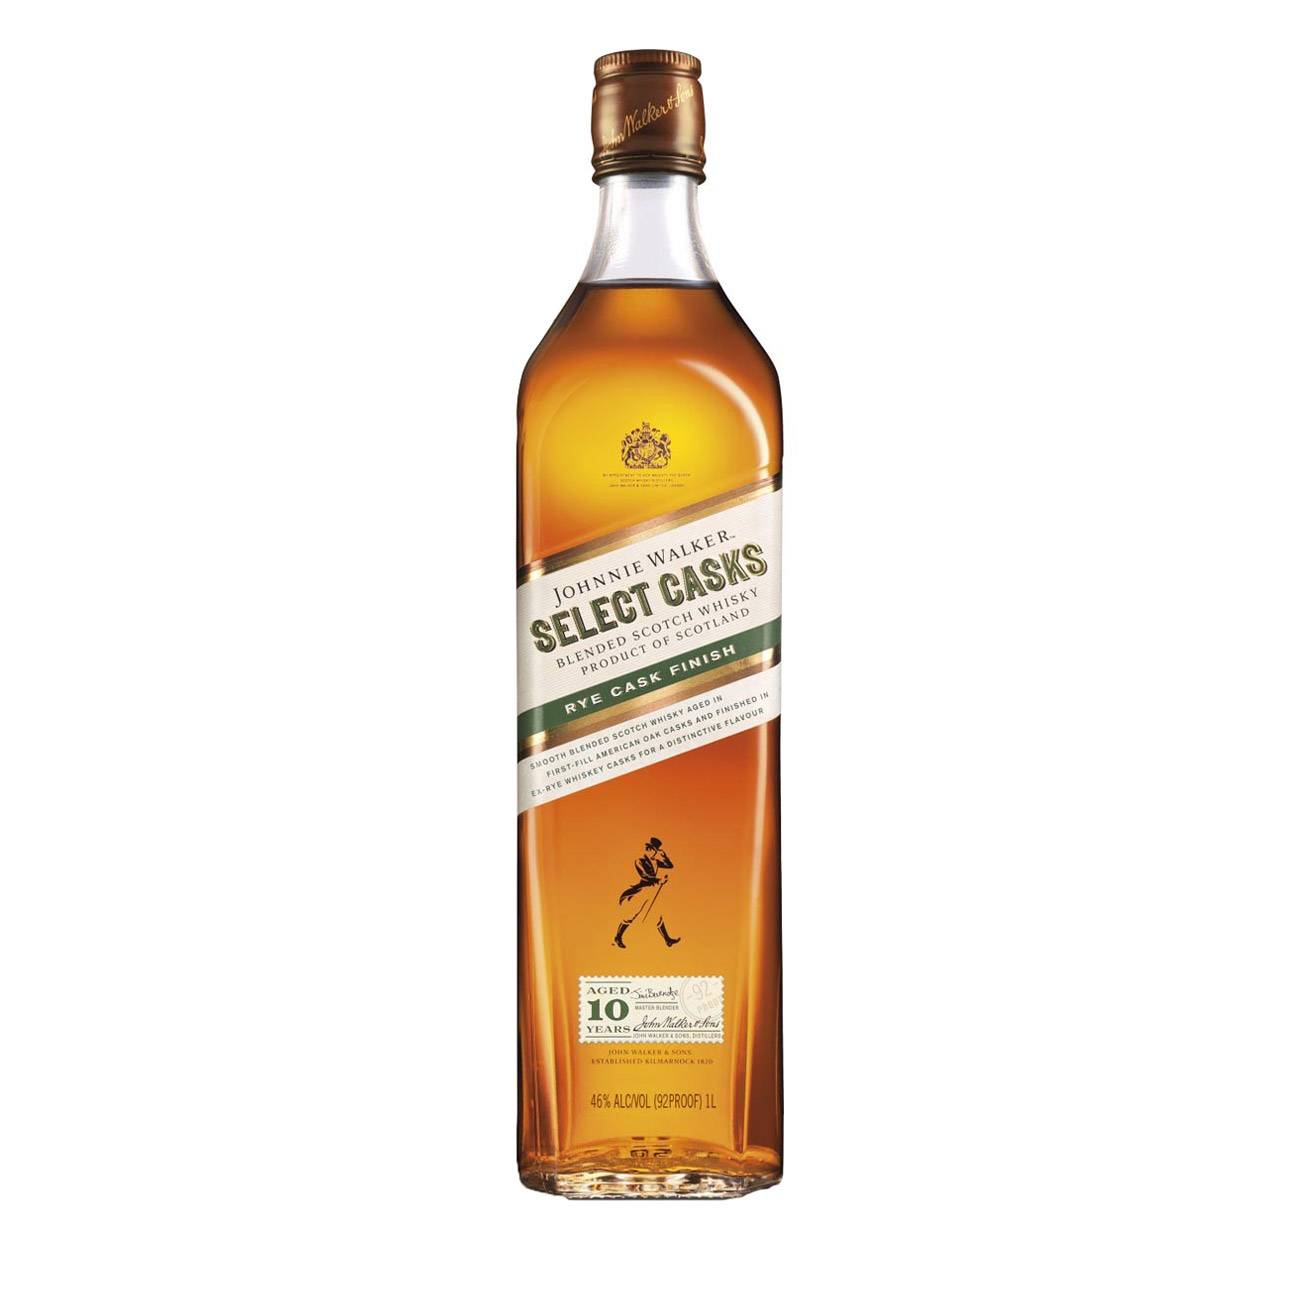 Whisky scotian, SELECT CASKS 1000 Ml, Johnnie Walker